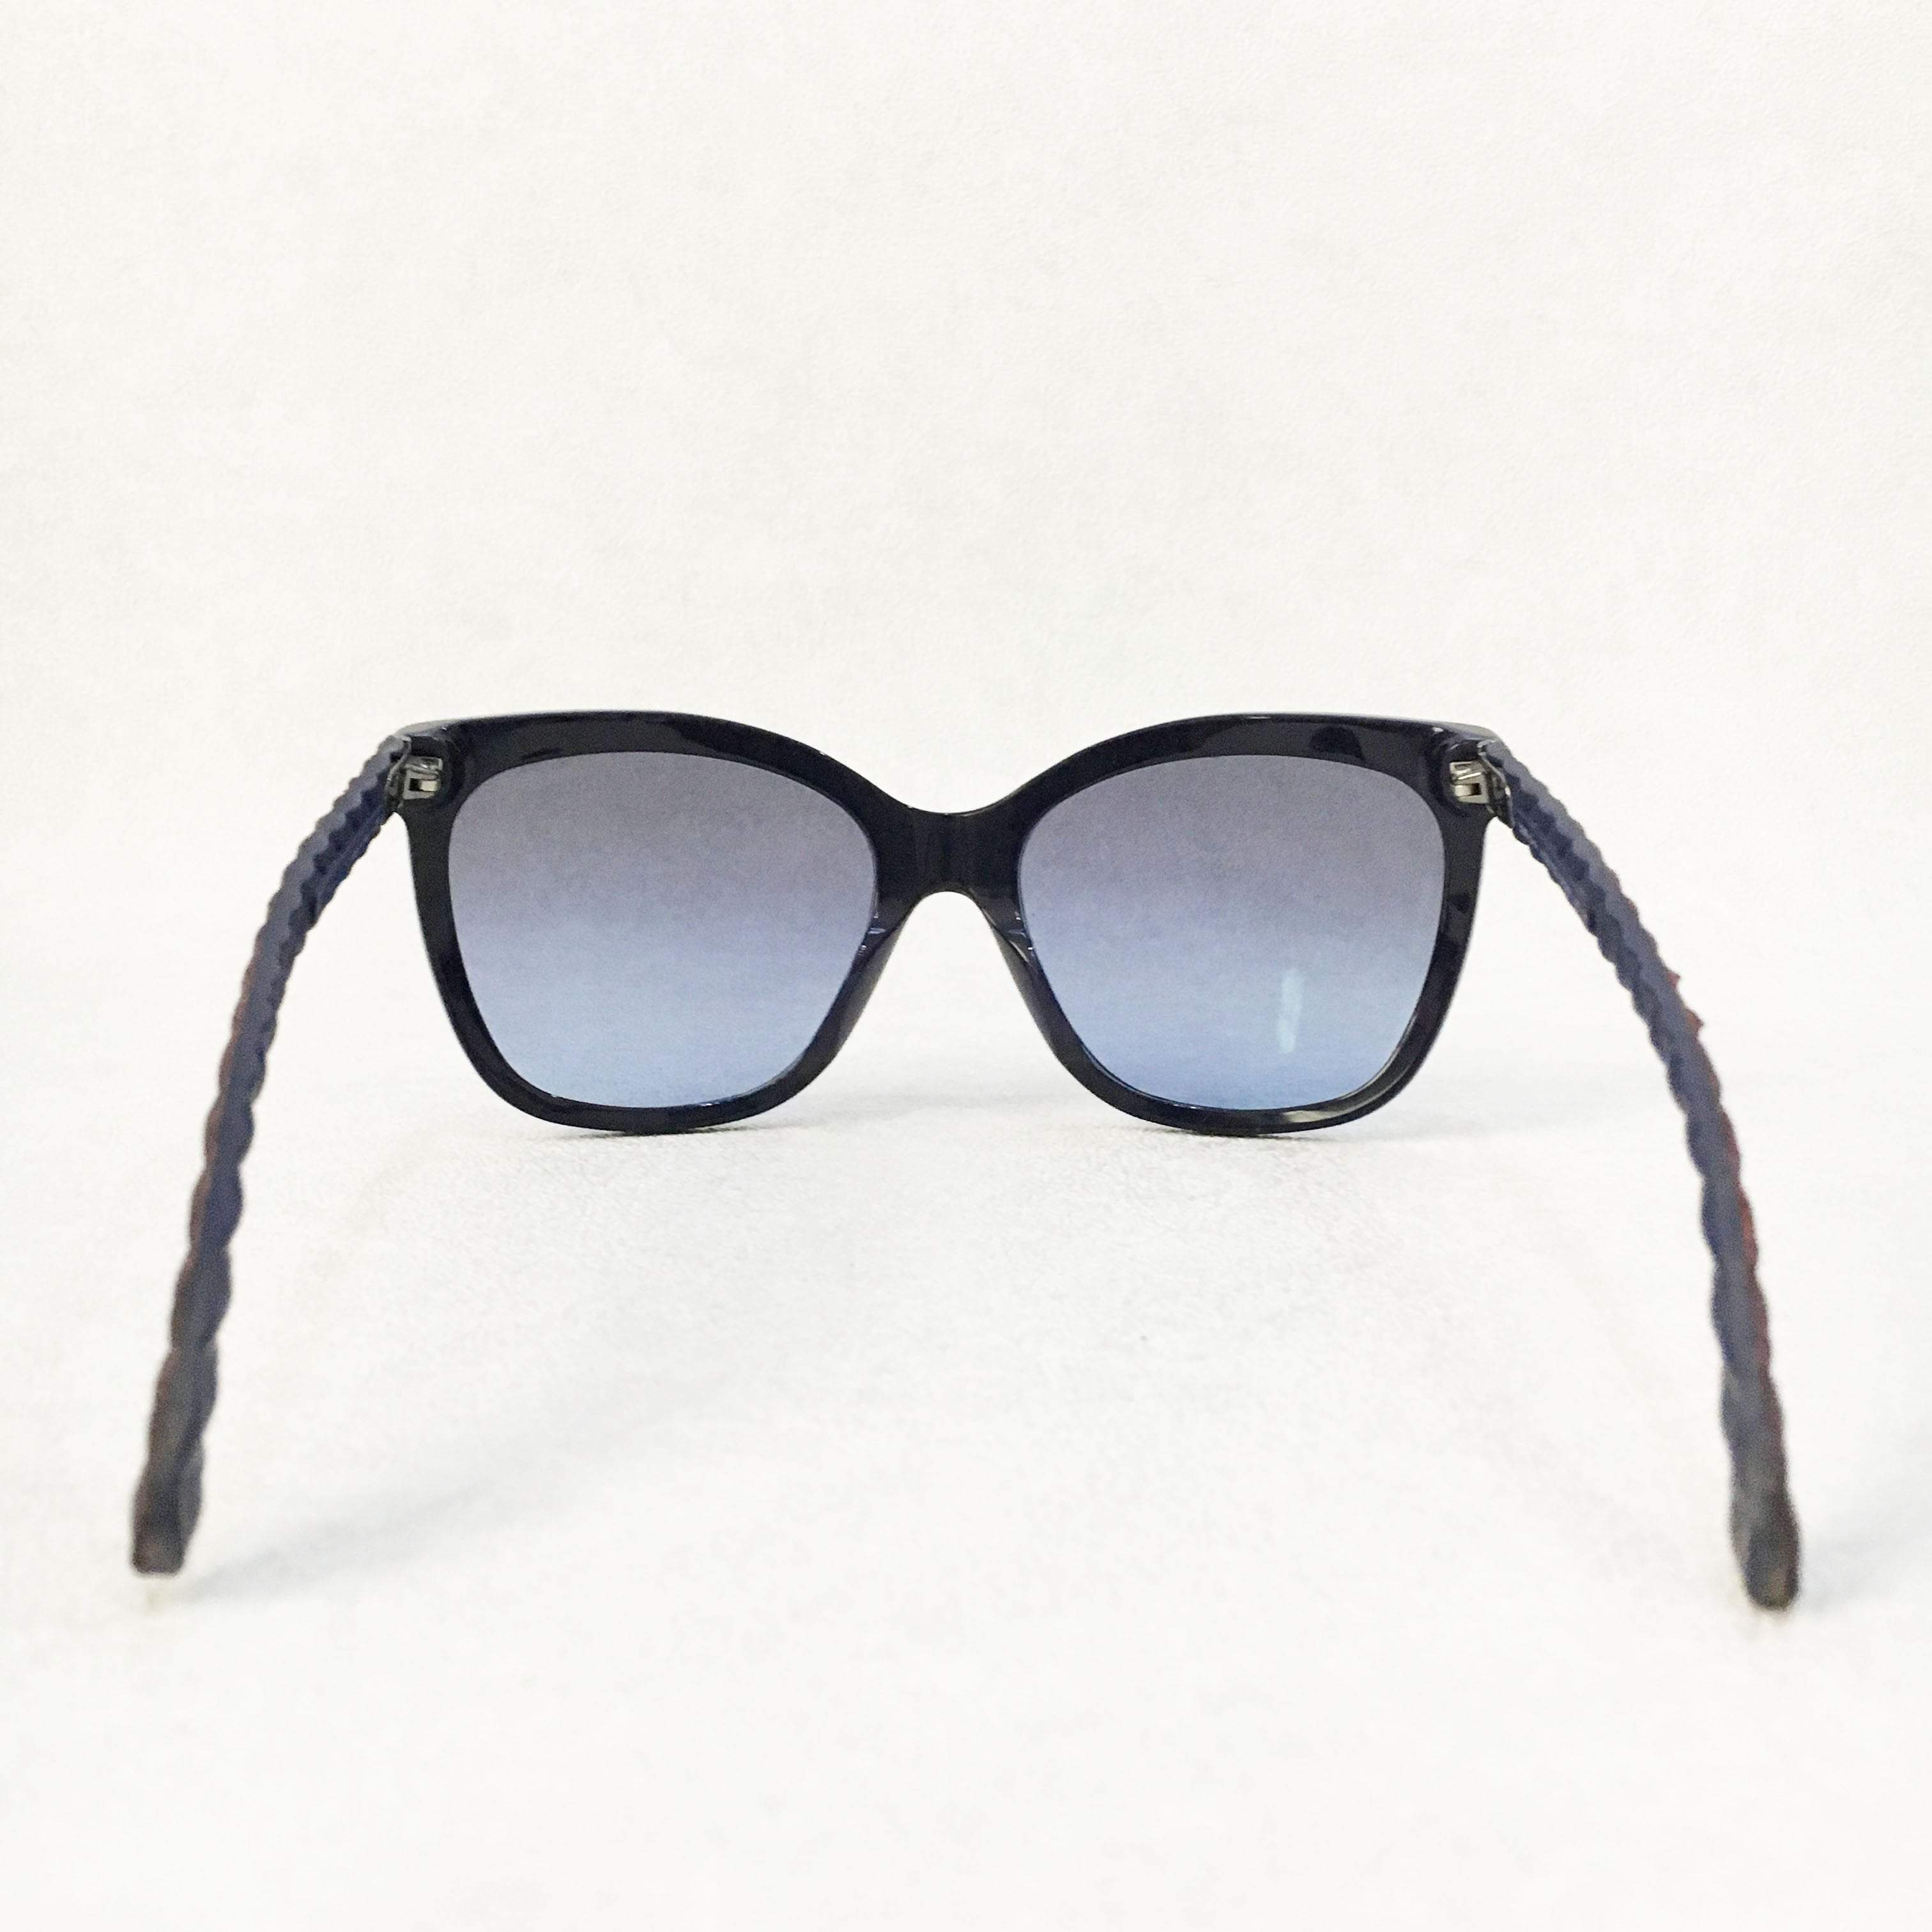 Chanel Sunglasses with Leather Arms – Garderobe